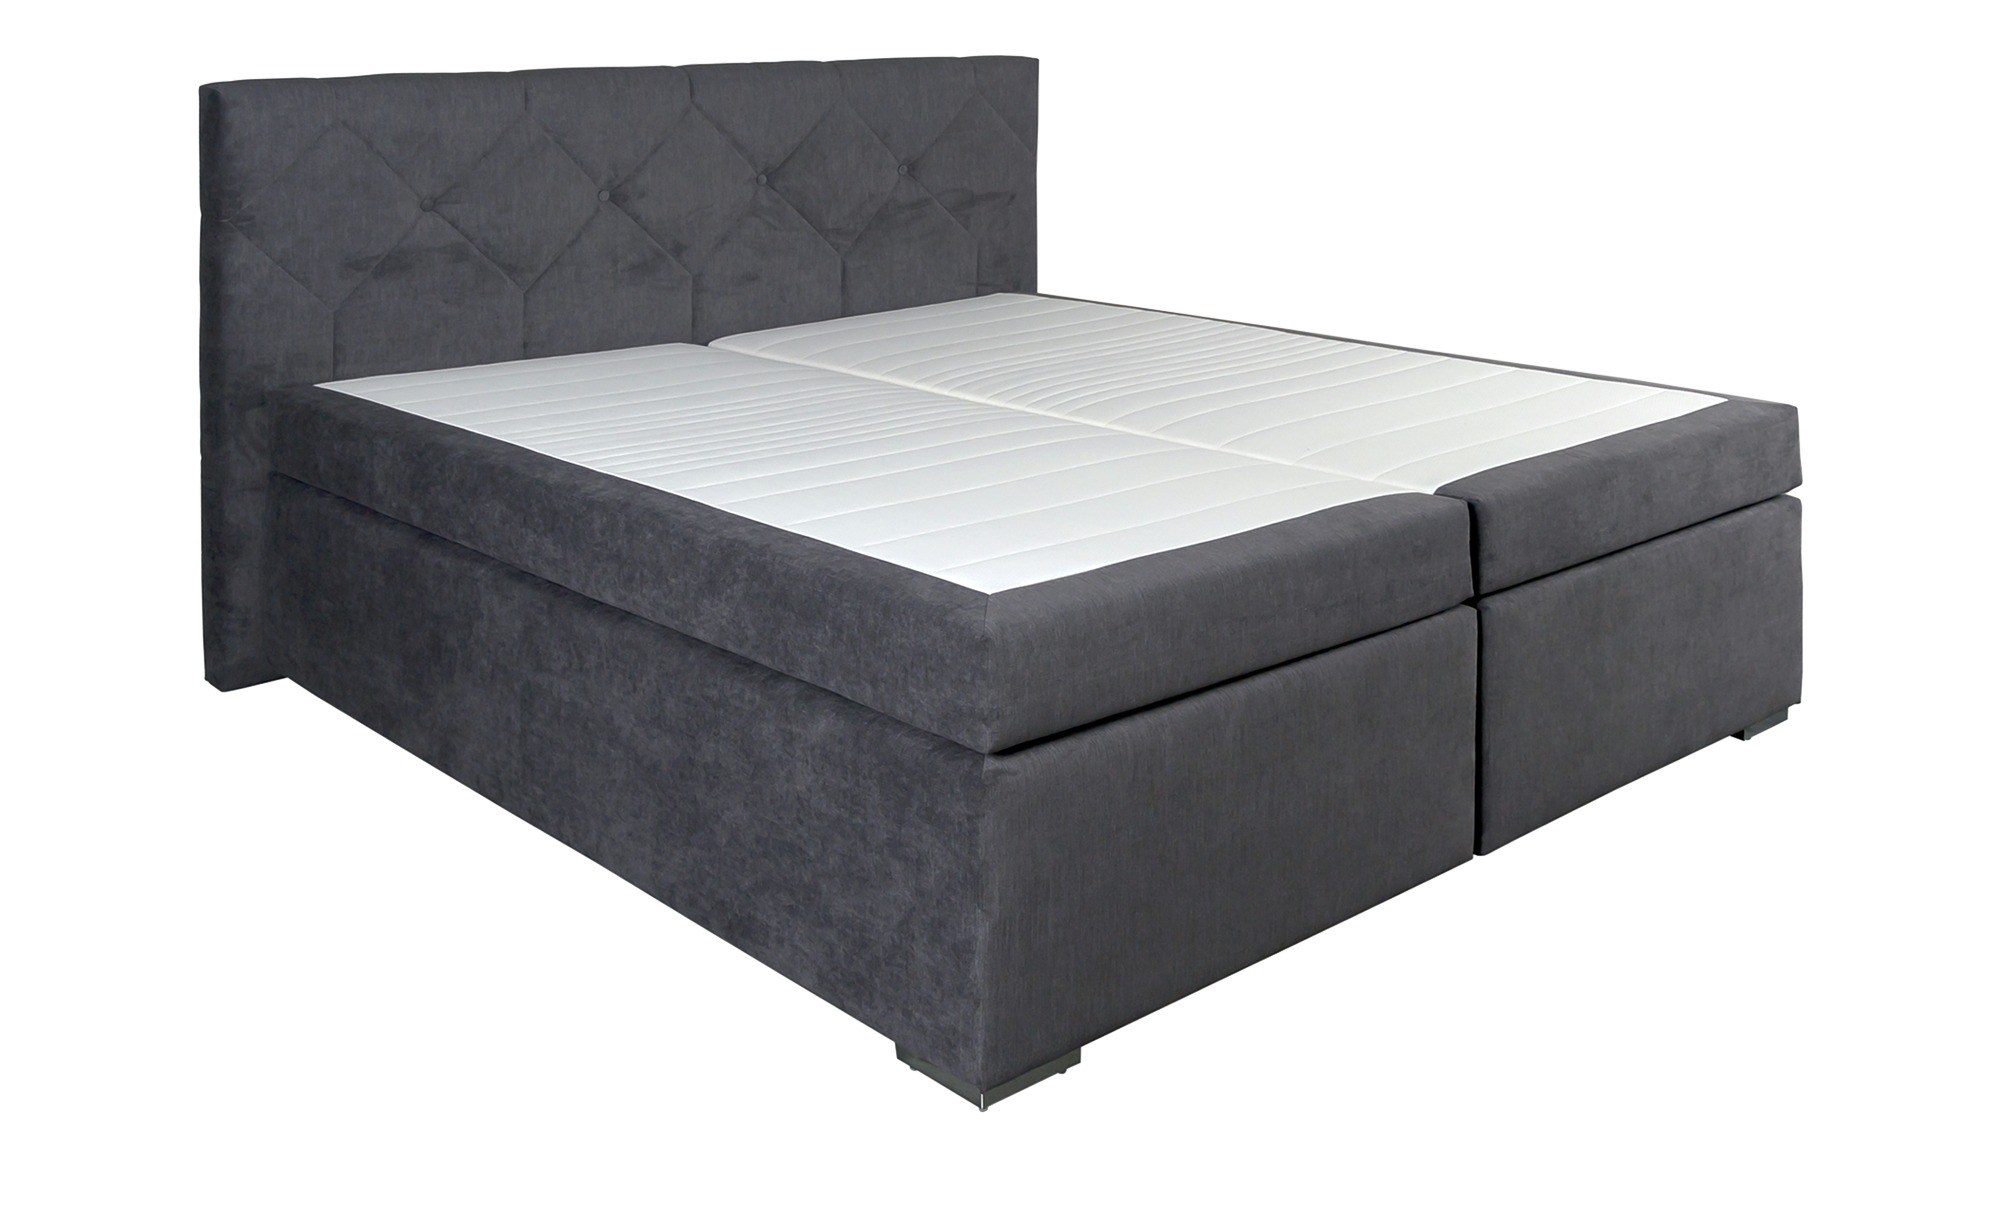 boxspringbett jasmin sconto der m belmarkt. Black Bedroom Furniture Sets. Home Design Ideas